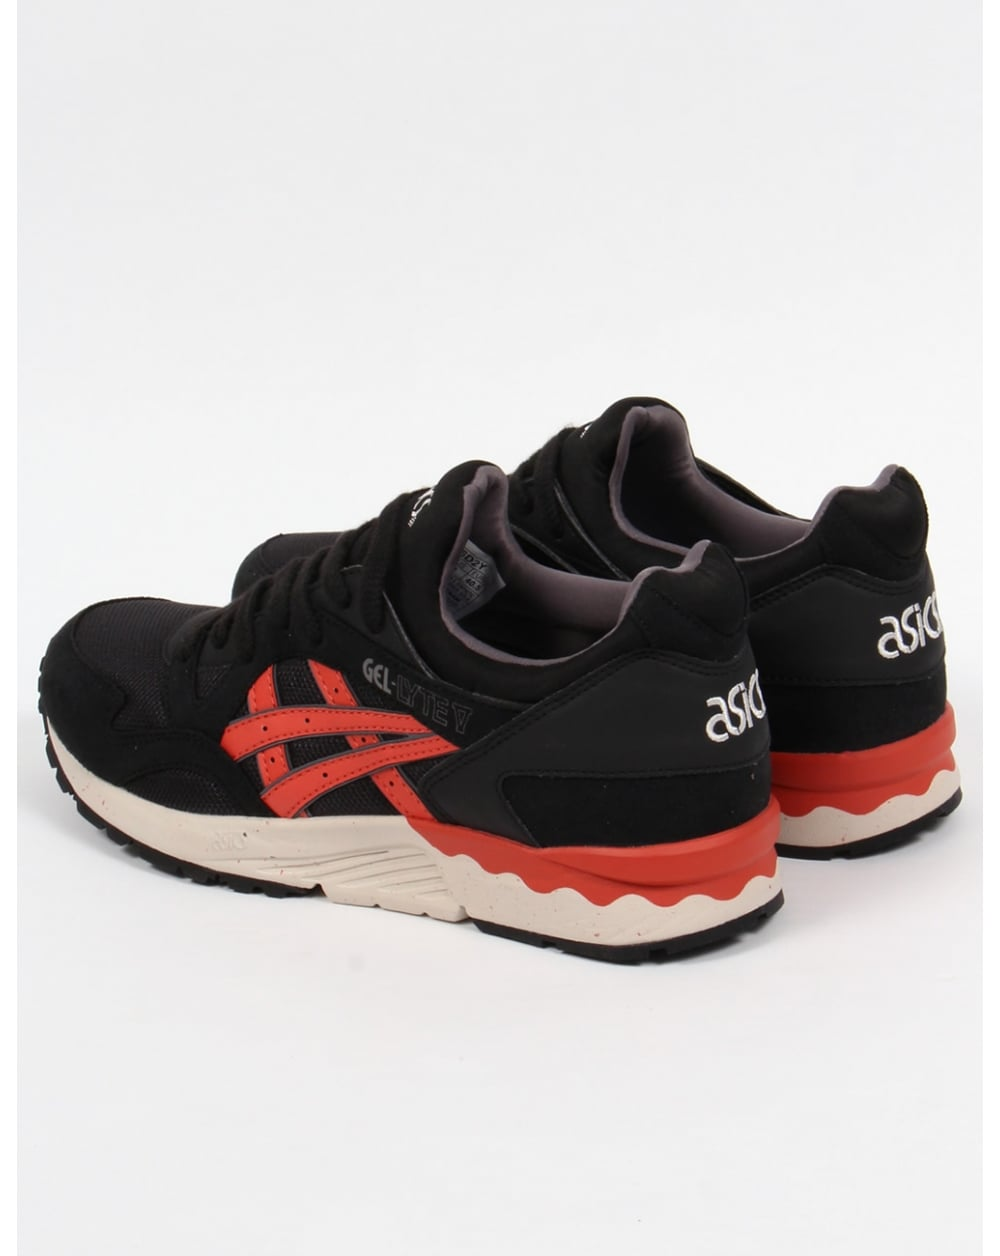 outlet store 7a288 cc65f Asics Gel Lyte V Trainers Black/chili Red